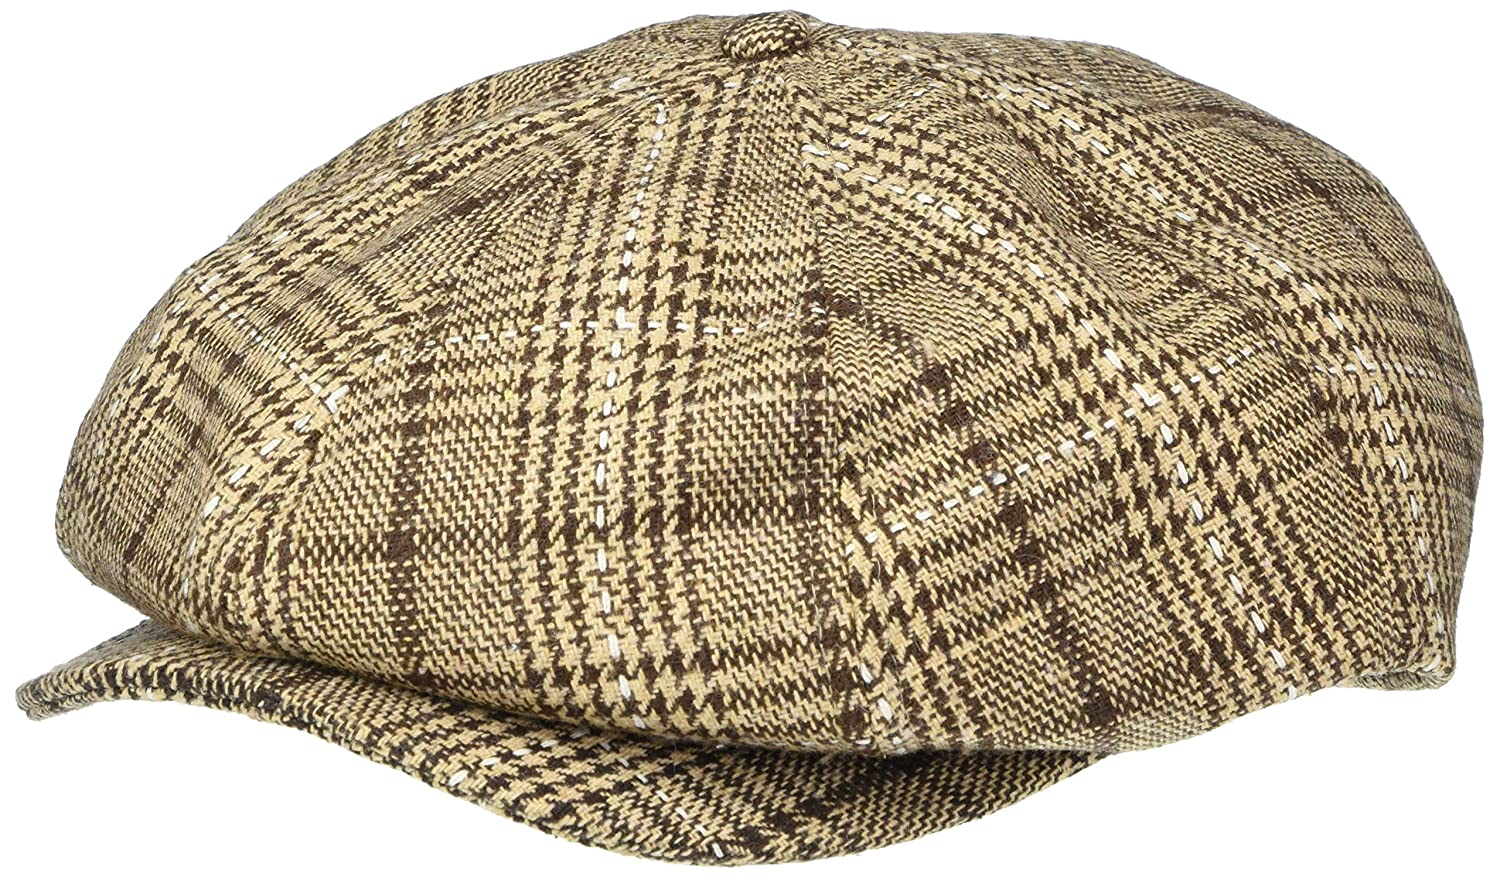 1920s Men's Hats – 8 Popular Styles BRIXTON Mens Brood Newsboy Snap Hat $37.11 AT vintagedancer.com